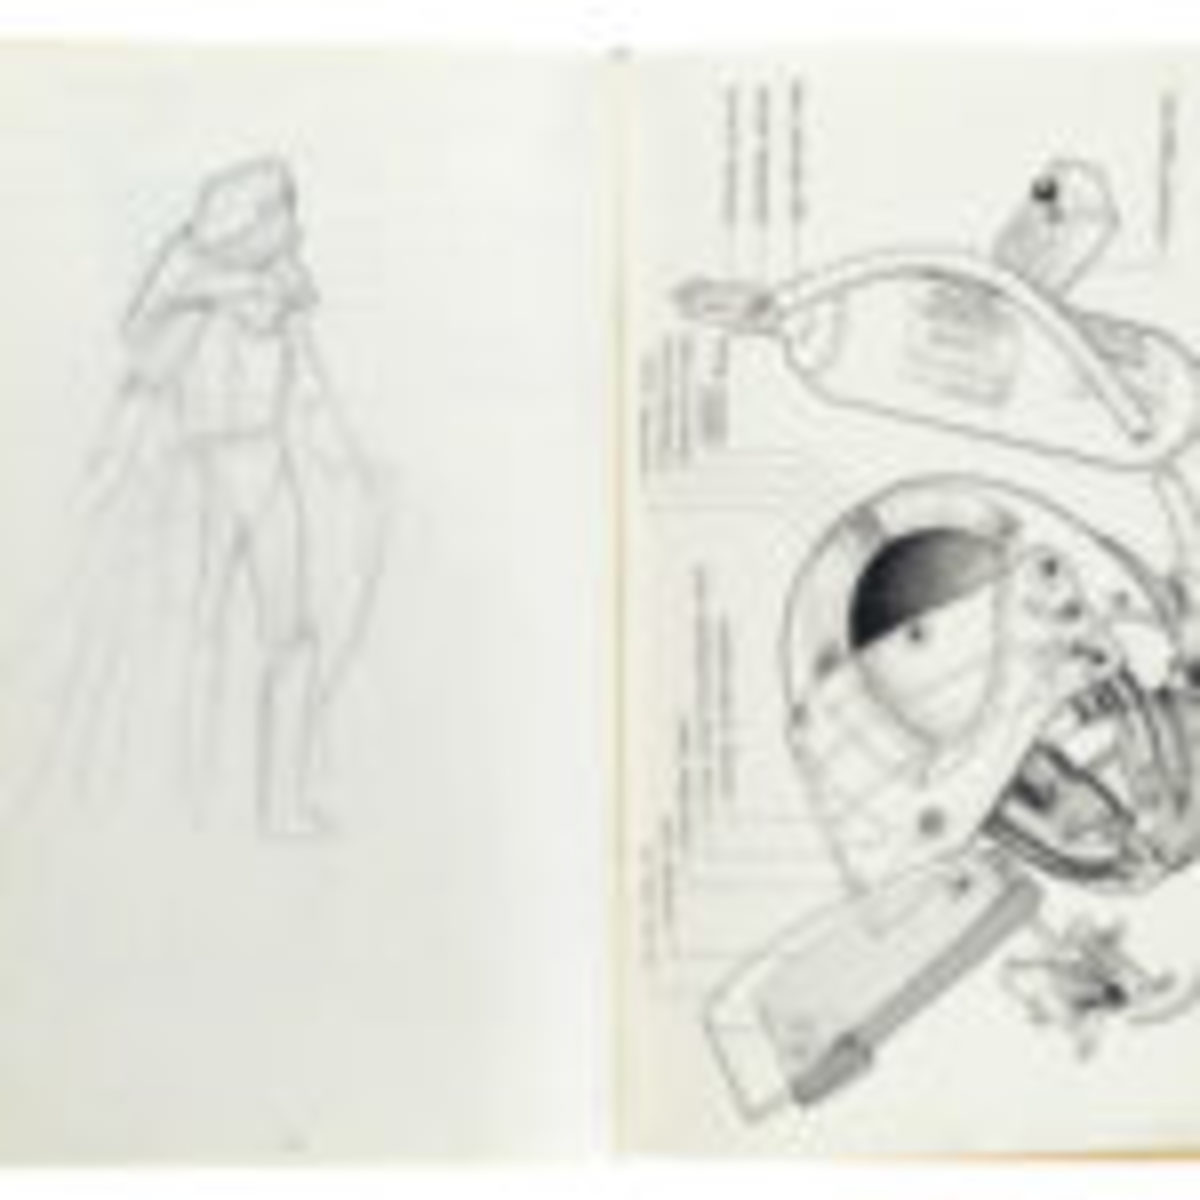 Star Wars costume designs